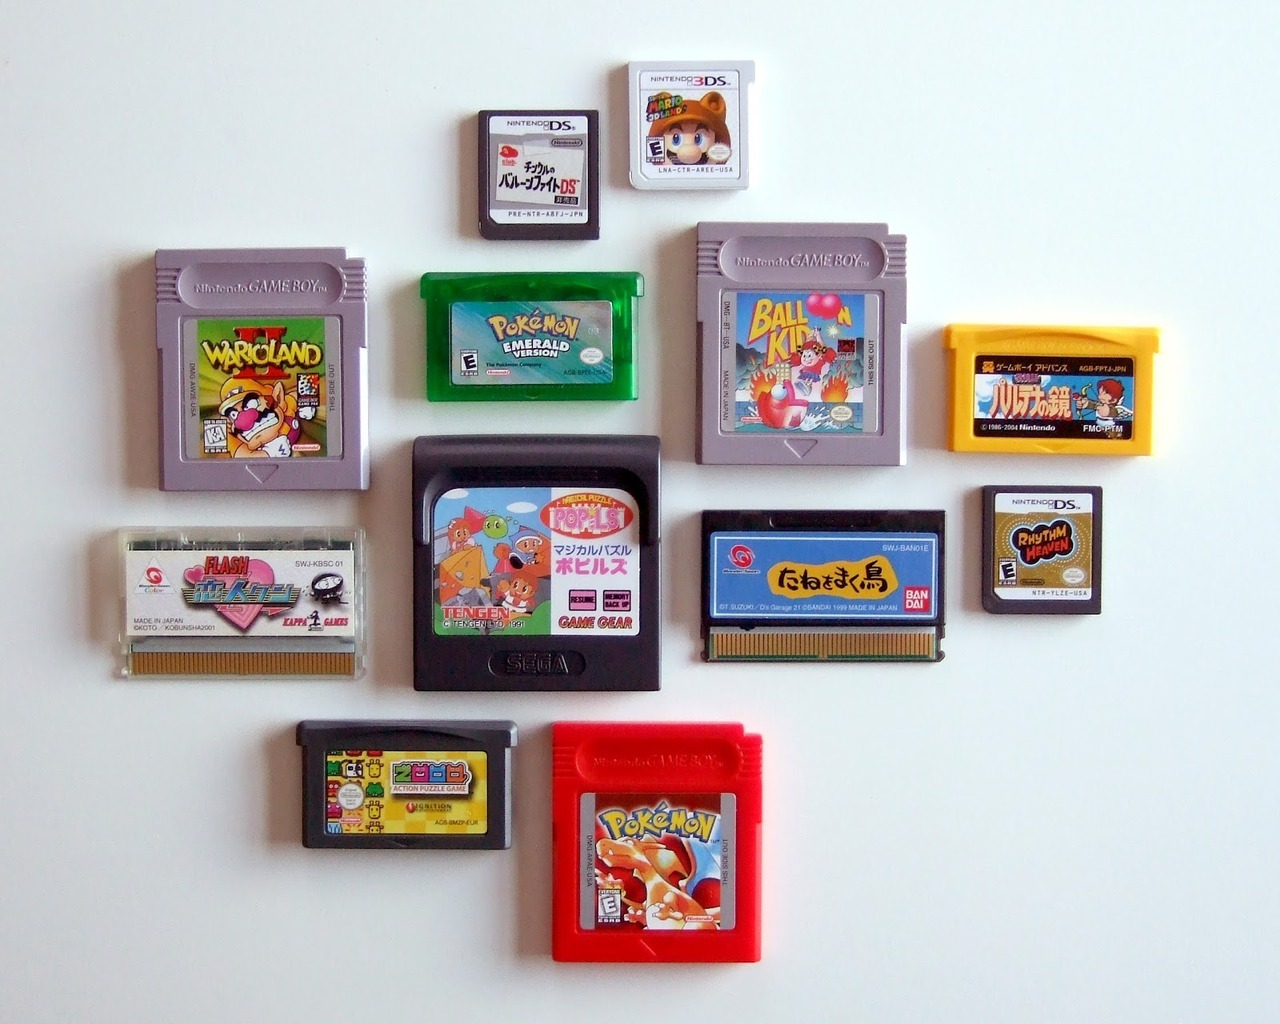 "It's a tiny cartridge reunion! Not everyone could make it, but almost everyone from the Nintendo side of the family is here — Game Boy, GBA, DS, and 3DS. There's Sega's Game Gear sandwiched between, wait, who are those guys? Oh, a couple relatives from overseas, Gunpei Yokoi's kids, WonderSwan and WS Color, showed up! Just a reminder that portable games are the best. Buy: Tiny Cartridge stickers for your DS/3DS cartridges See also: ""Collection"" by Terry Mack [Via The Gay Gamer]"